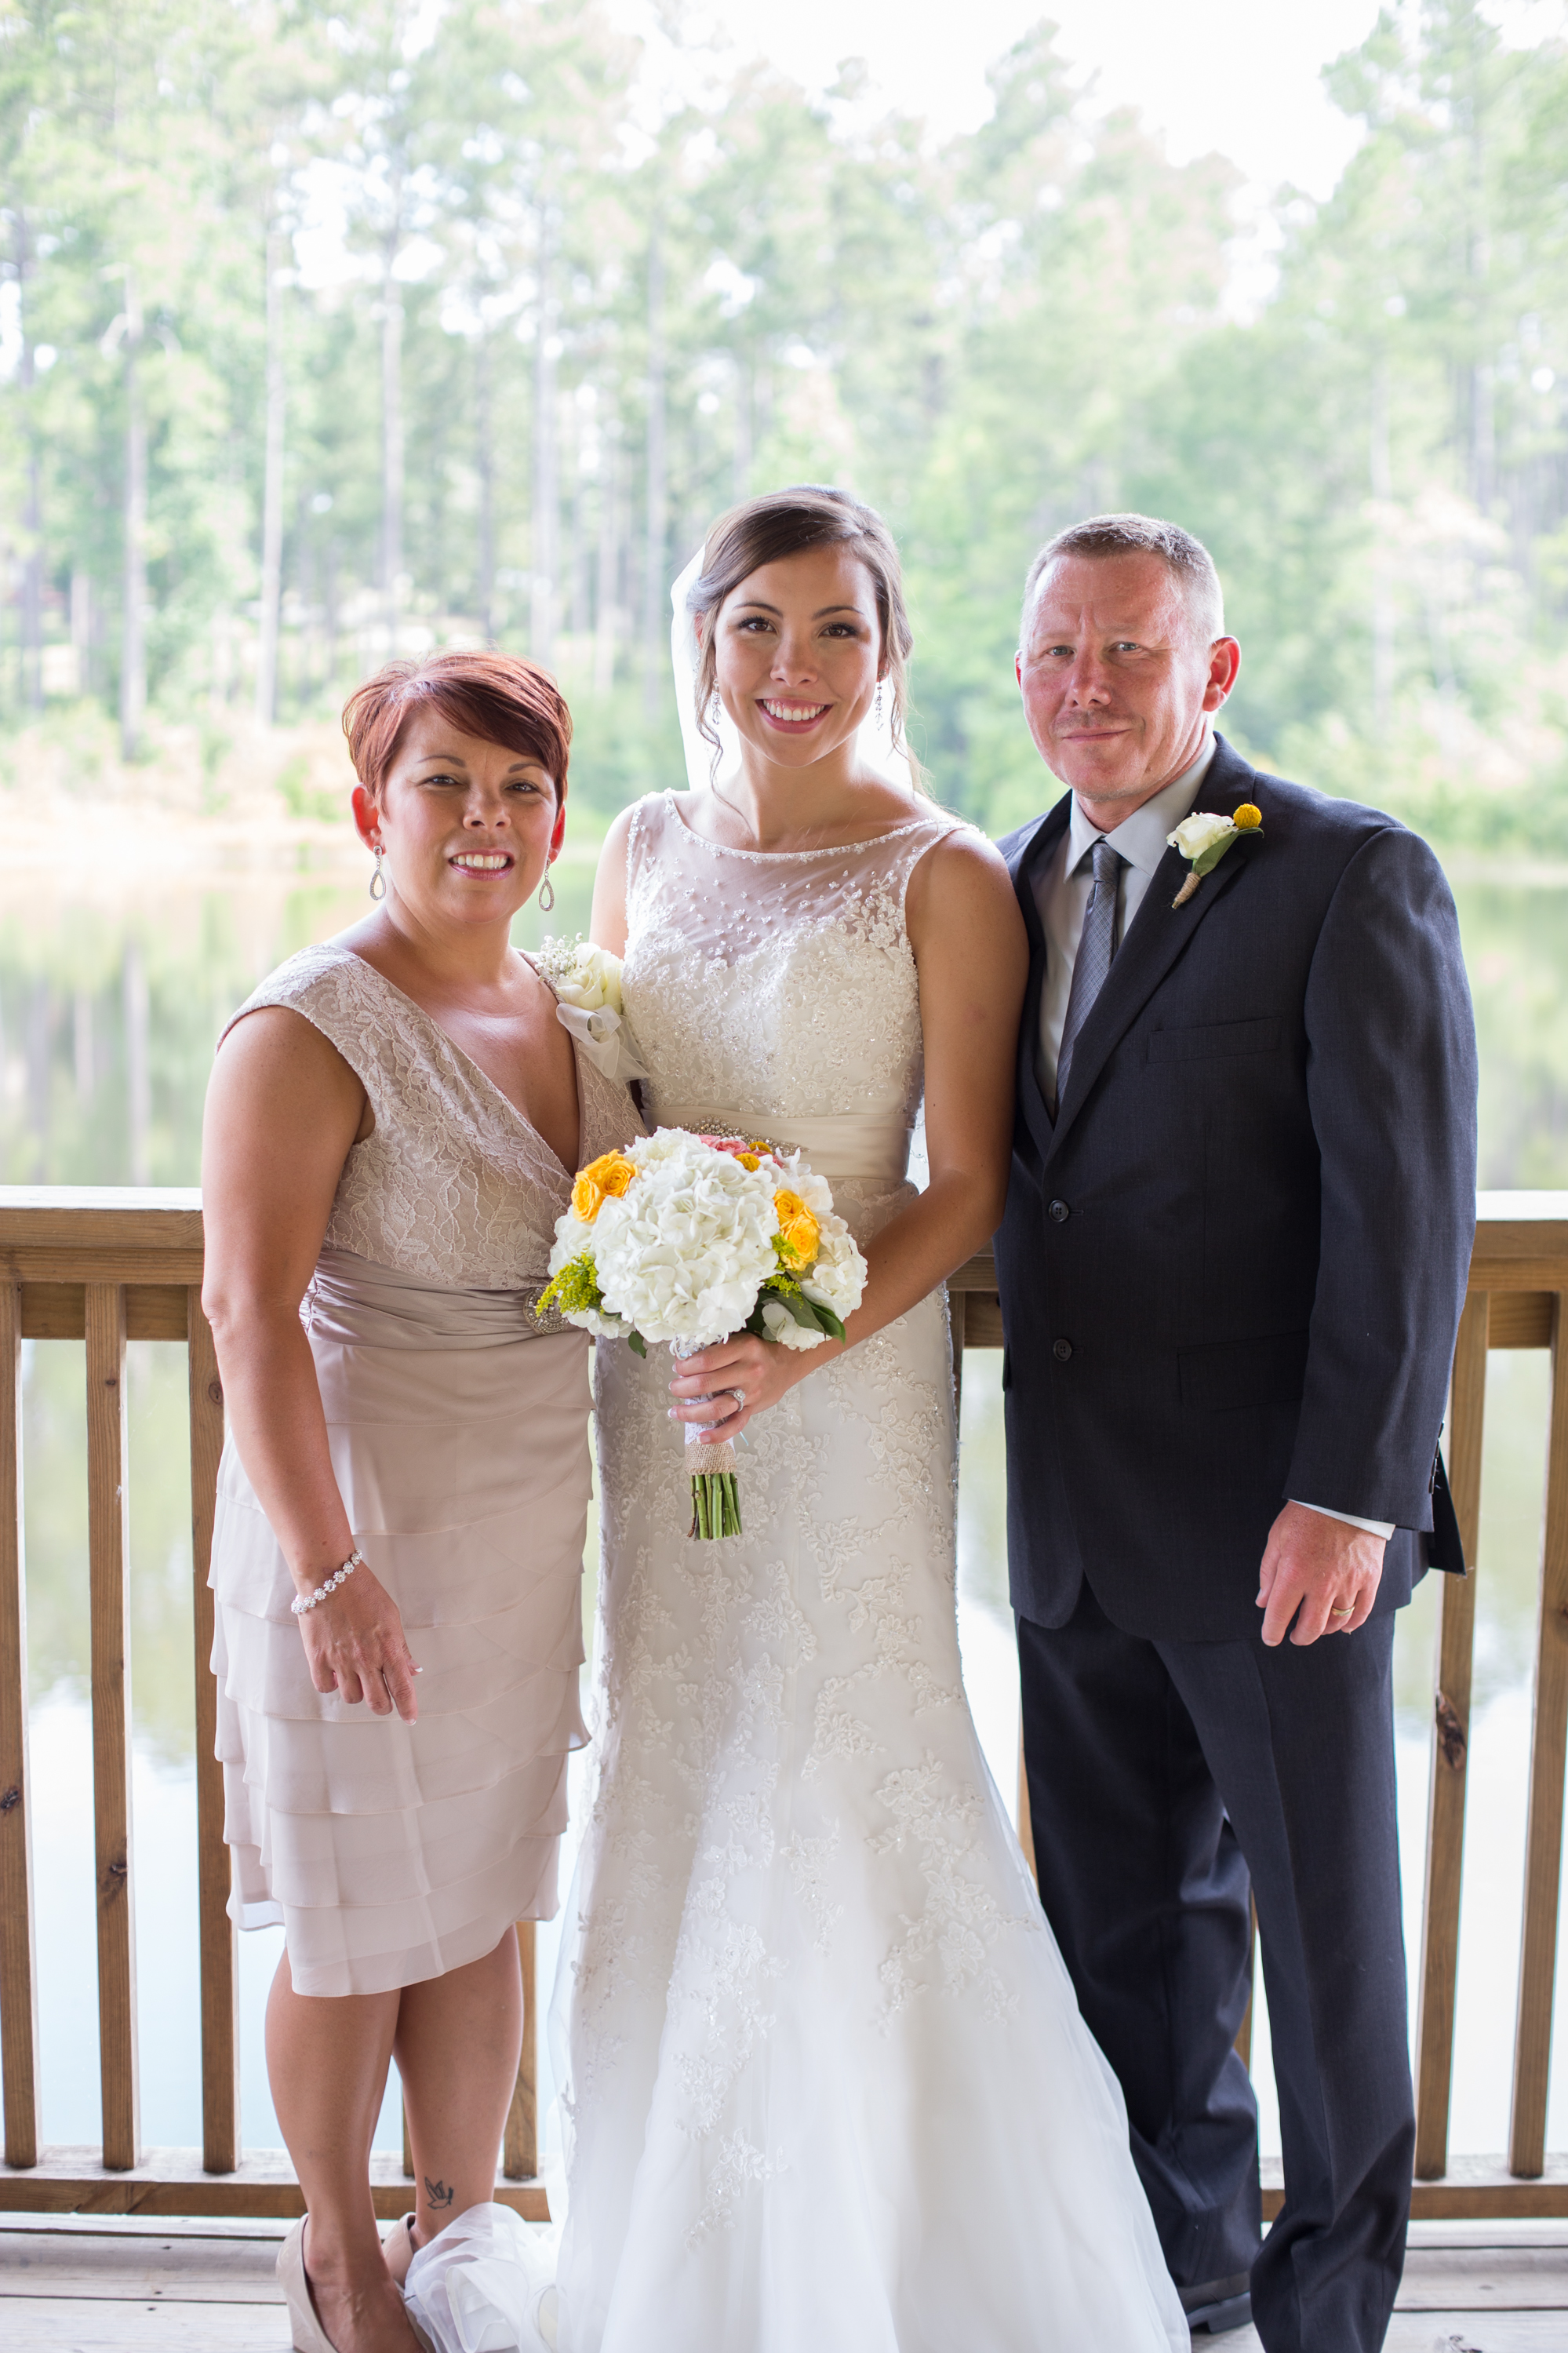 Alyssa Edwards & her sweet Mom & Dad. Photo by Michelle Taulbee Photography